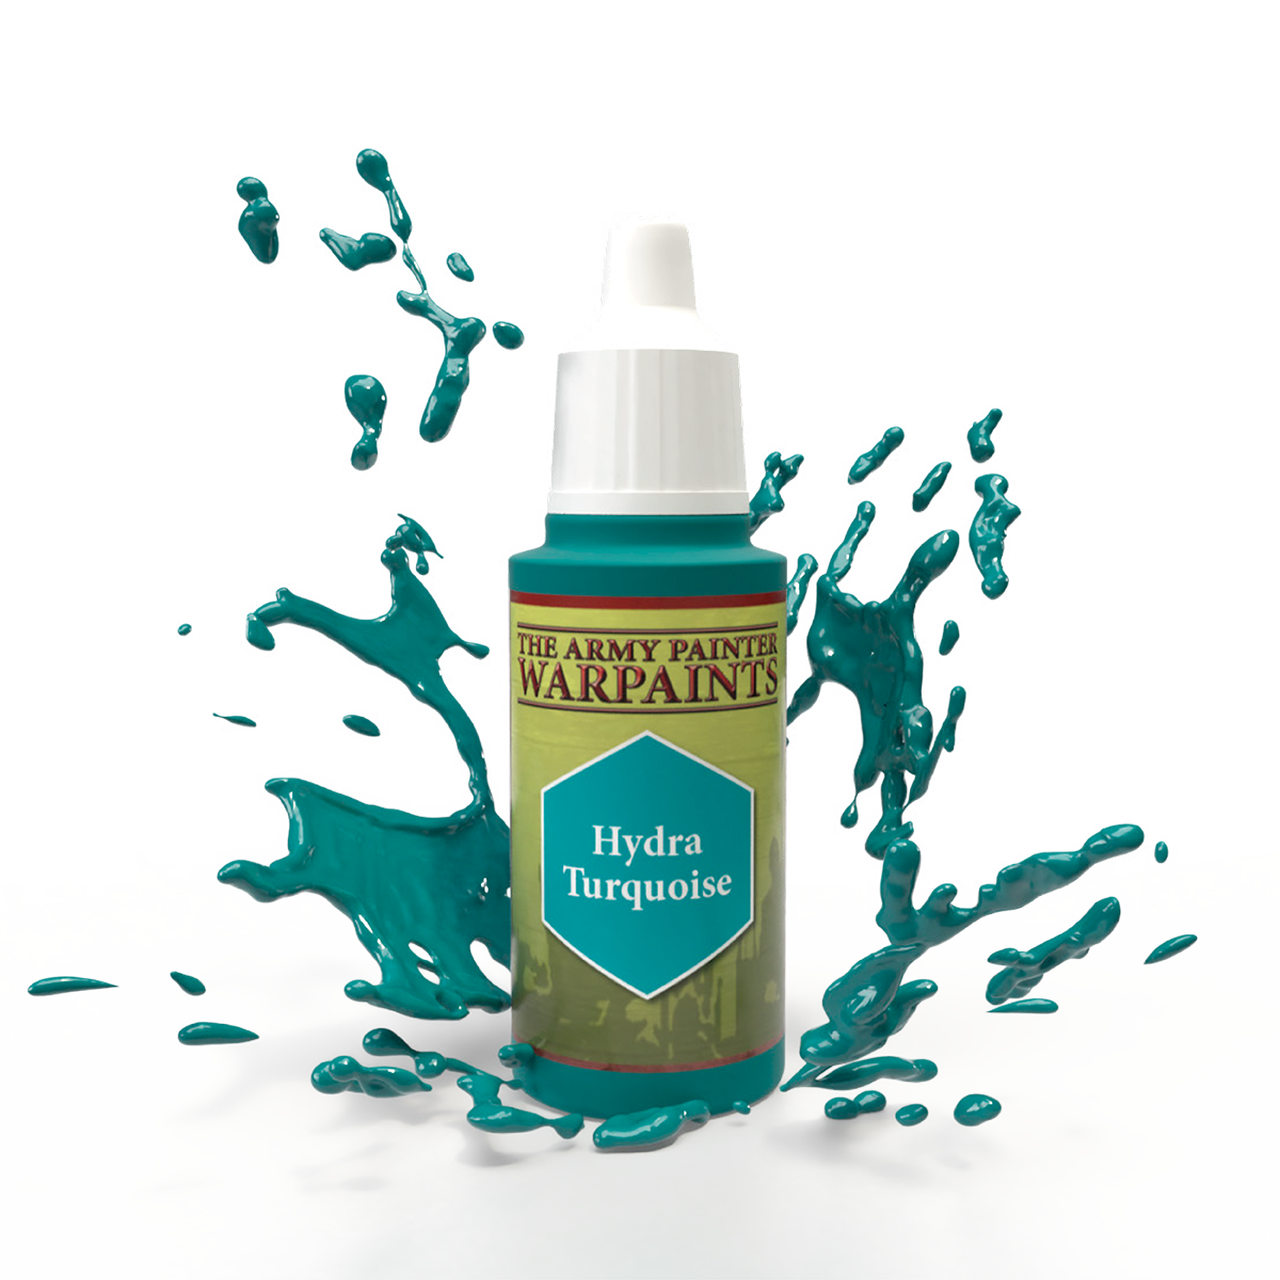 Army Painter Warpaint - Hydra Turquoise